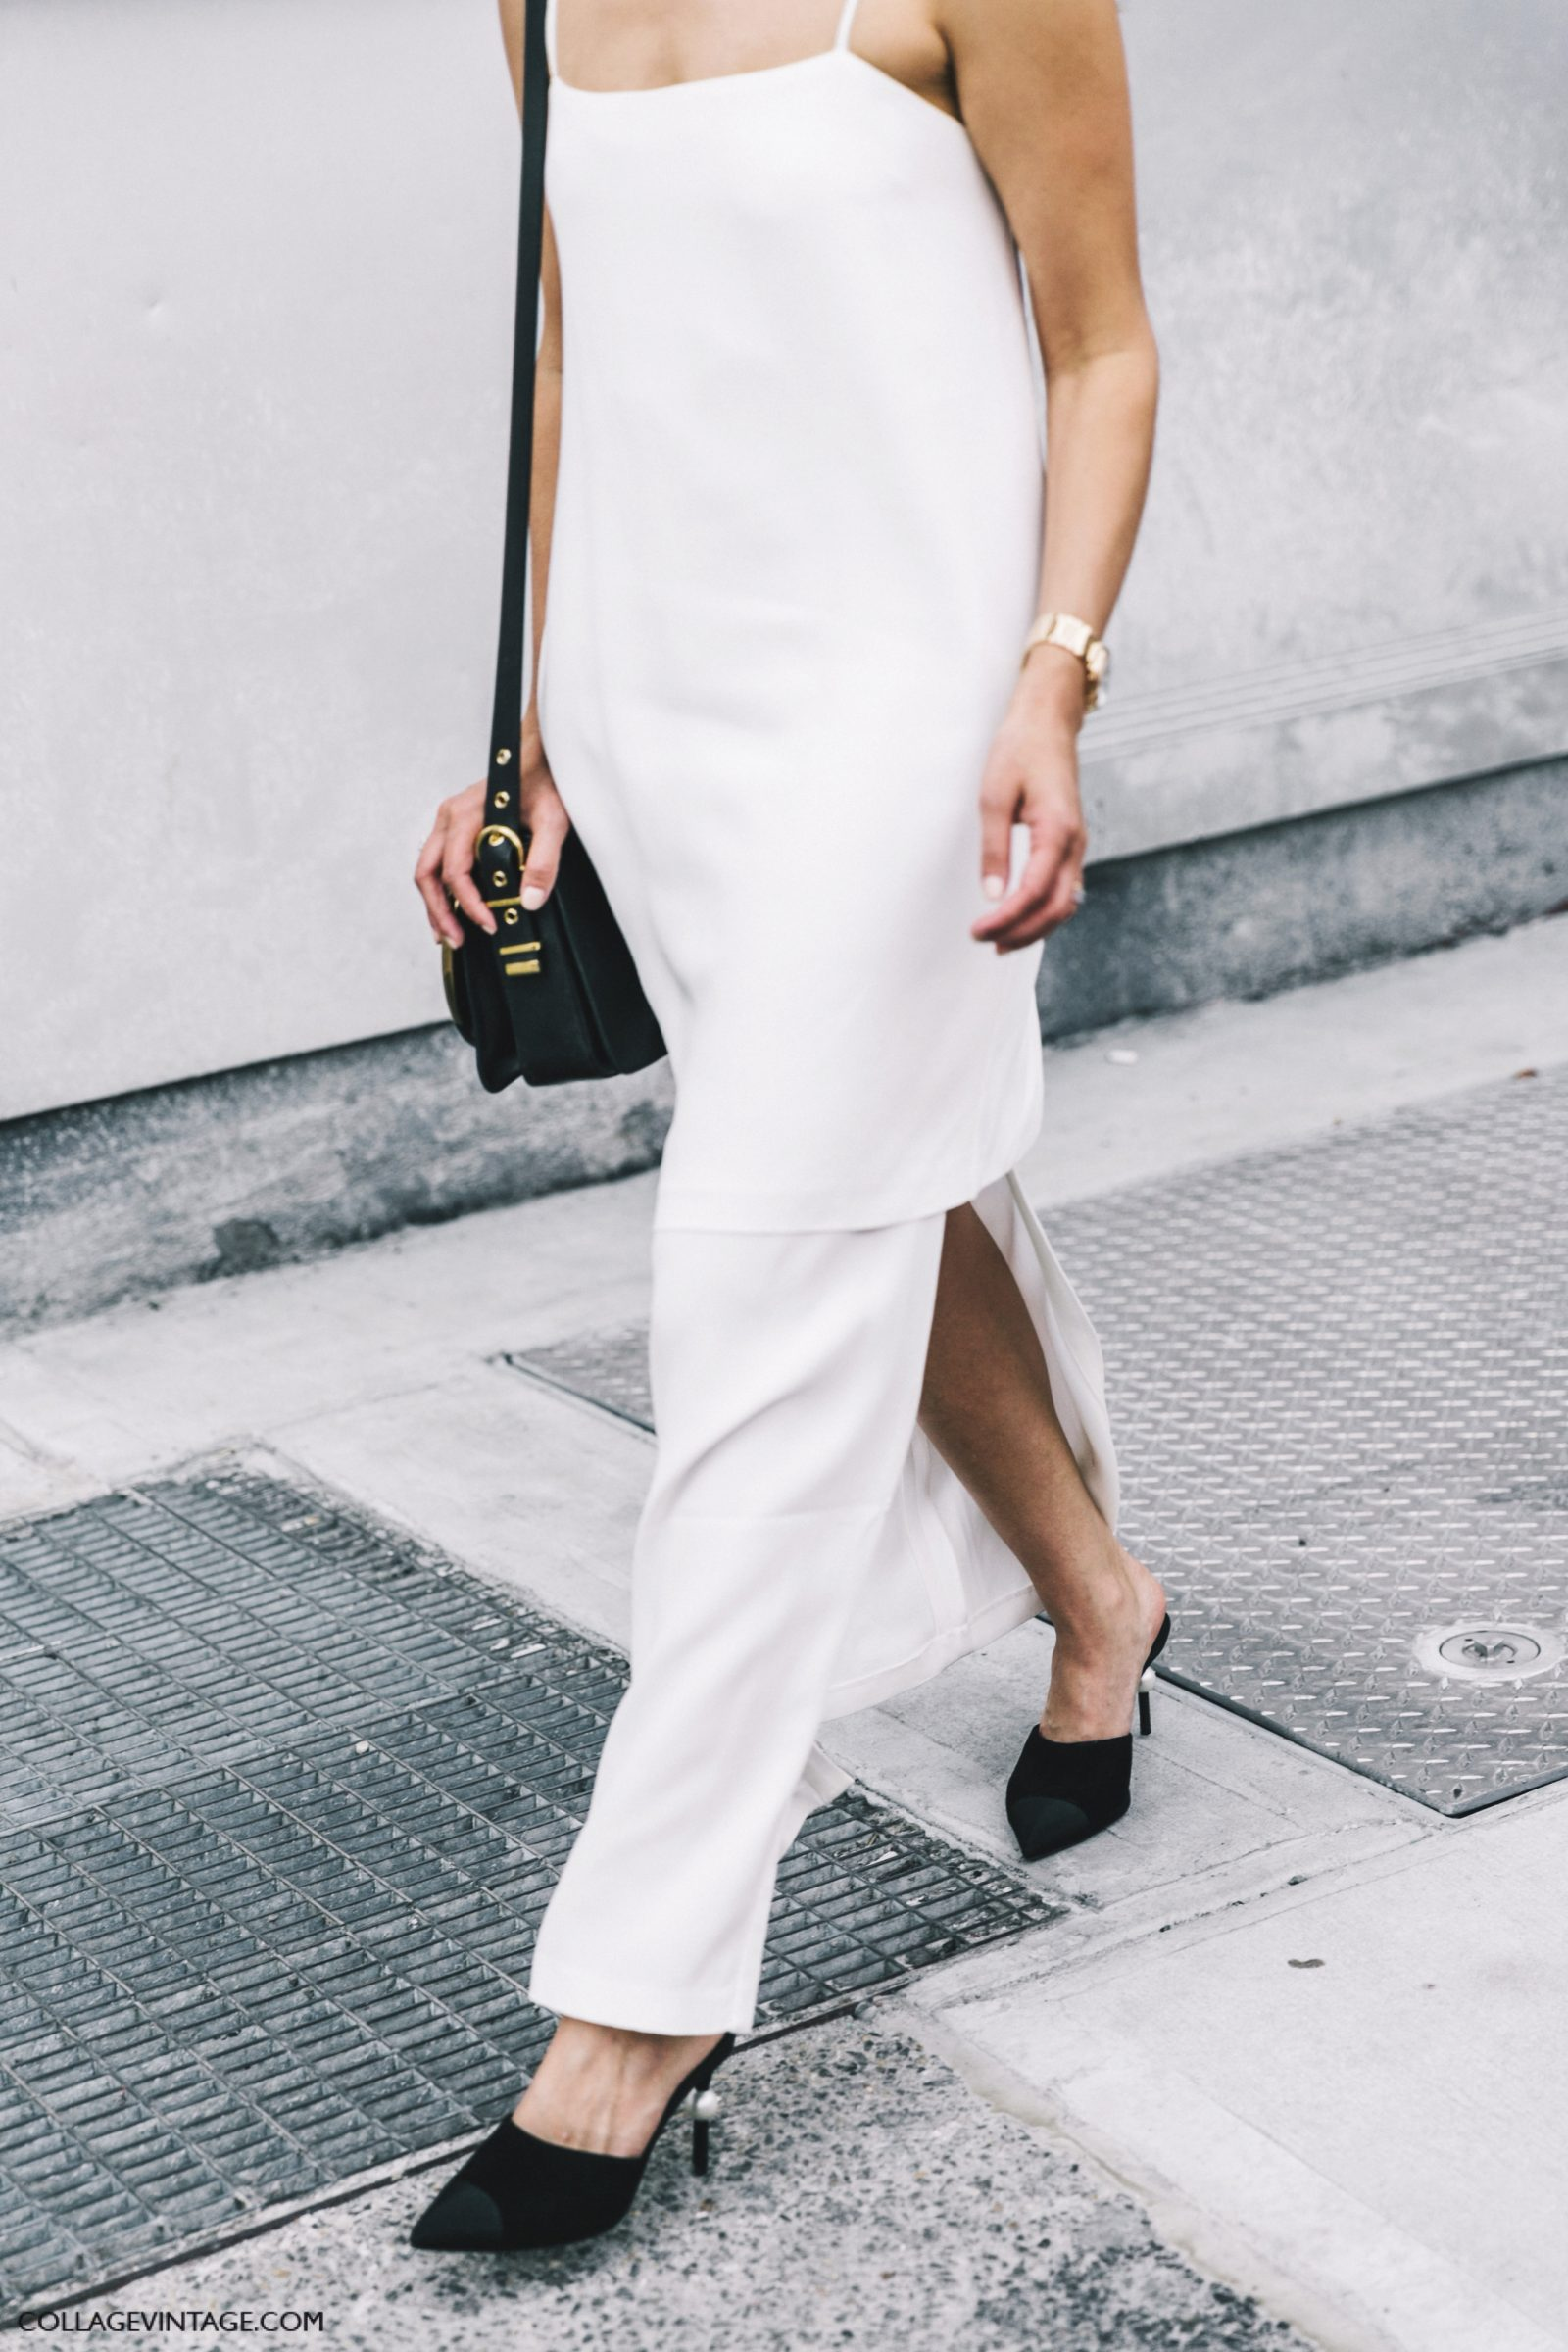 nyfw-new_york_fashion_week_ss17-street_style-outfits-collage_vintage-amanda_weiner-chanel_shoes-2